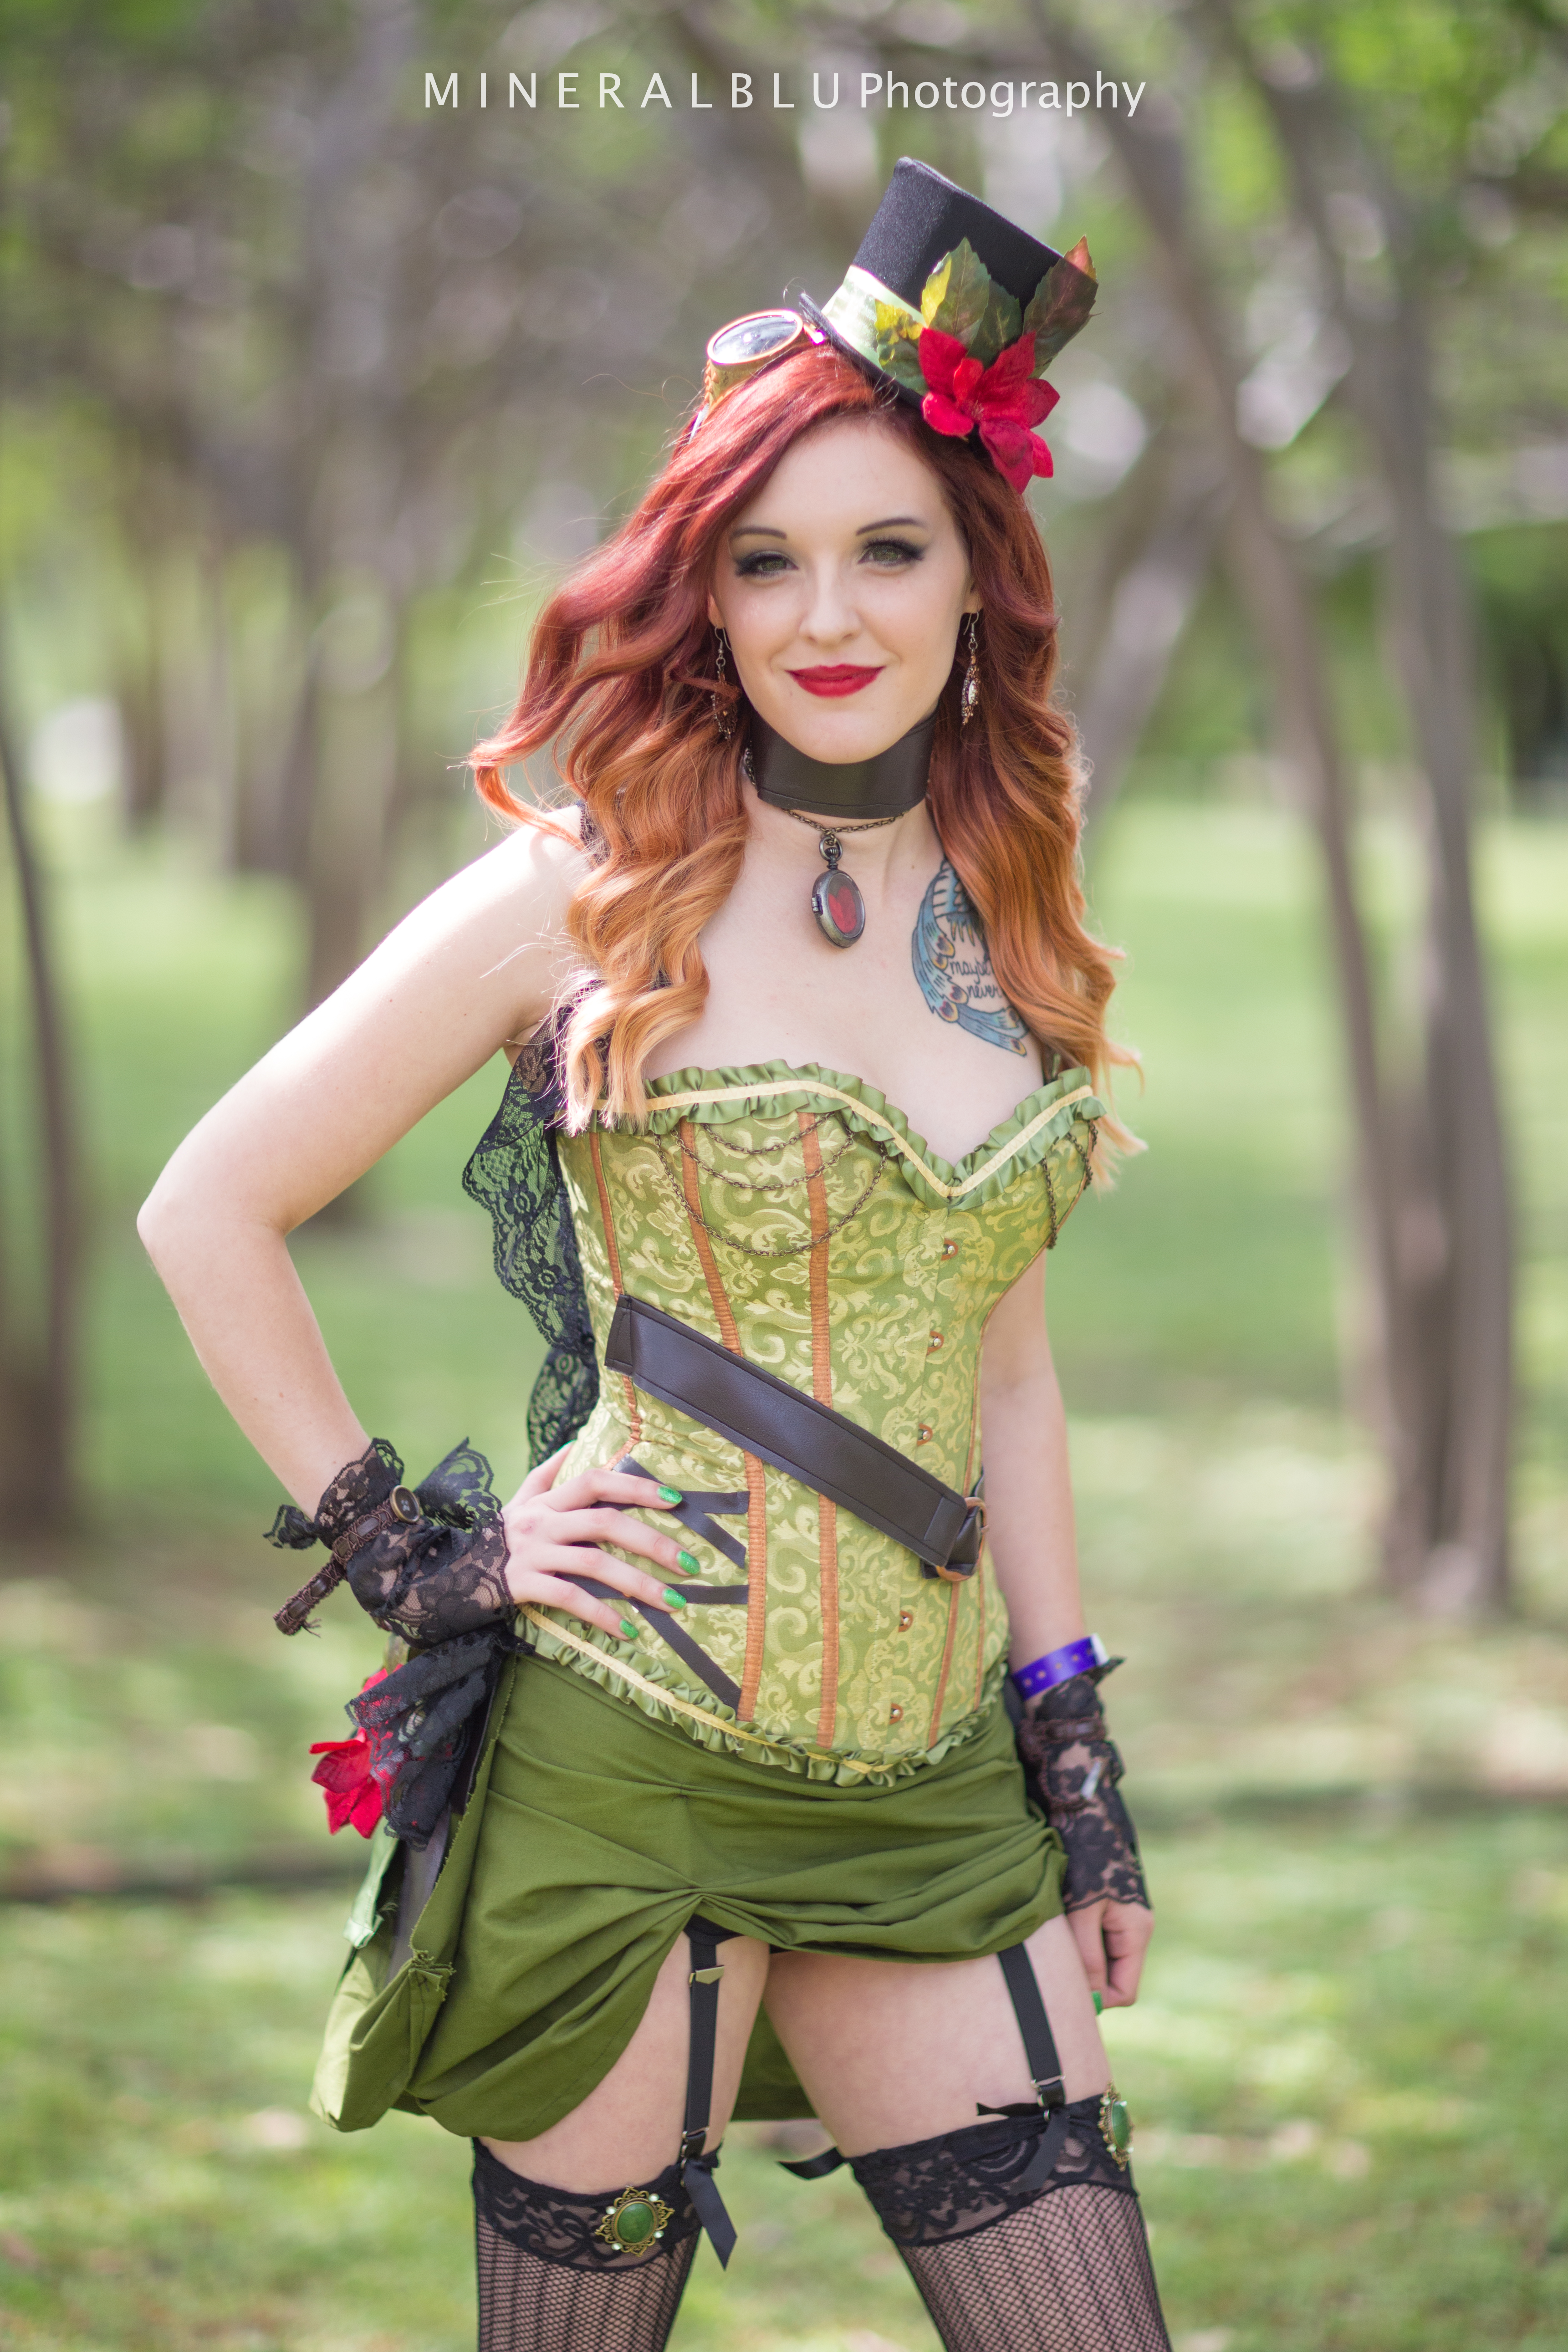 Fan Expo Dallas Cosplay Coverage Presented By Mineralblu